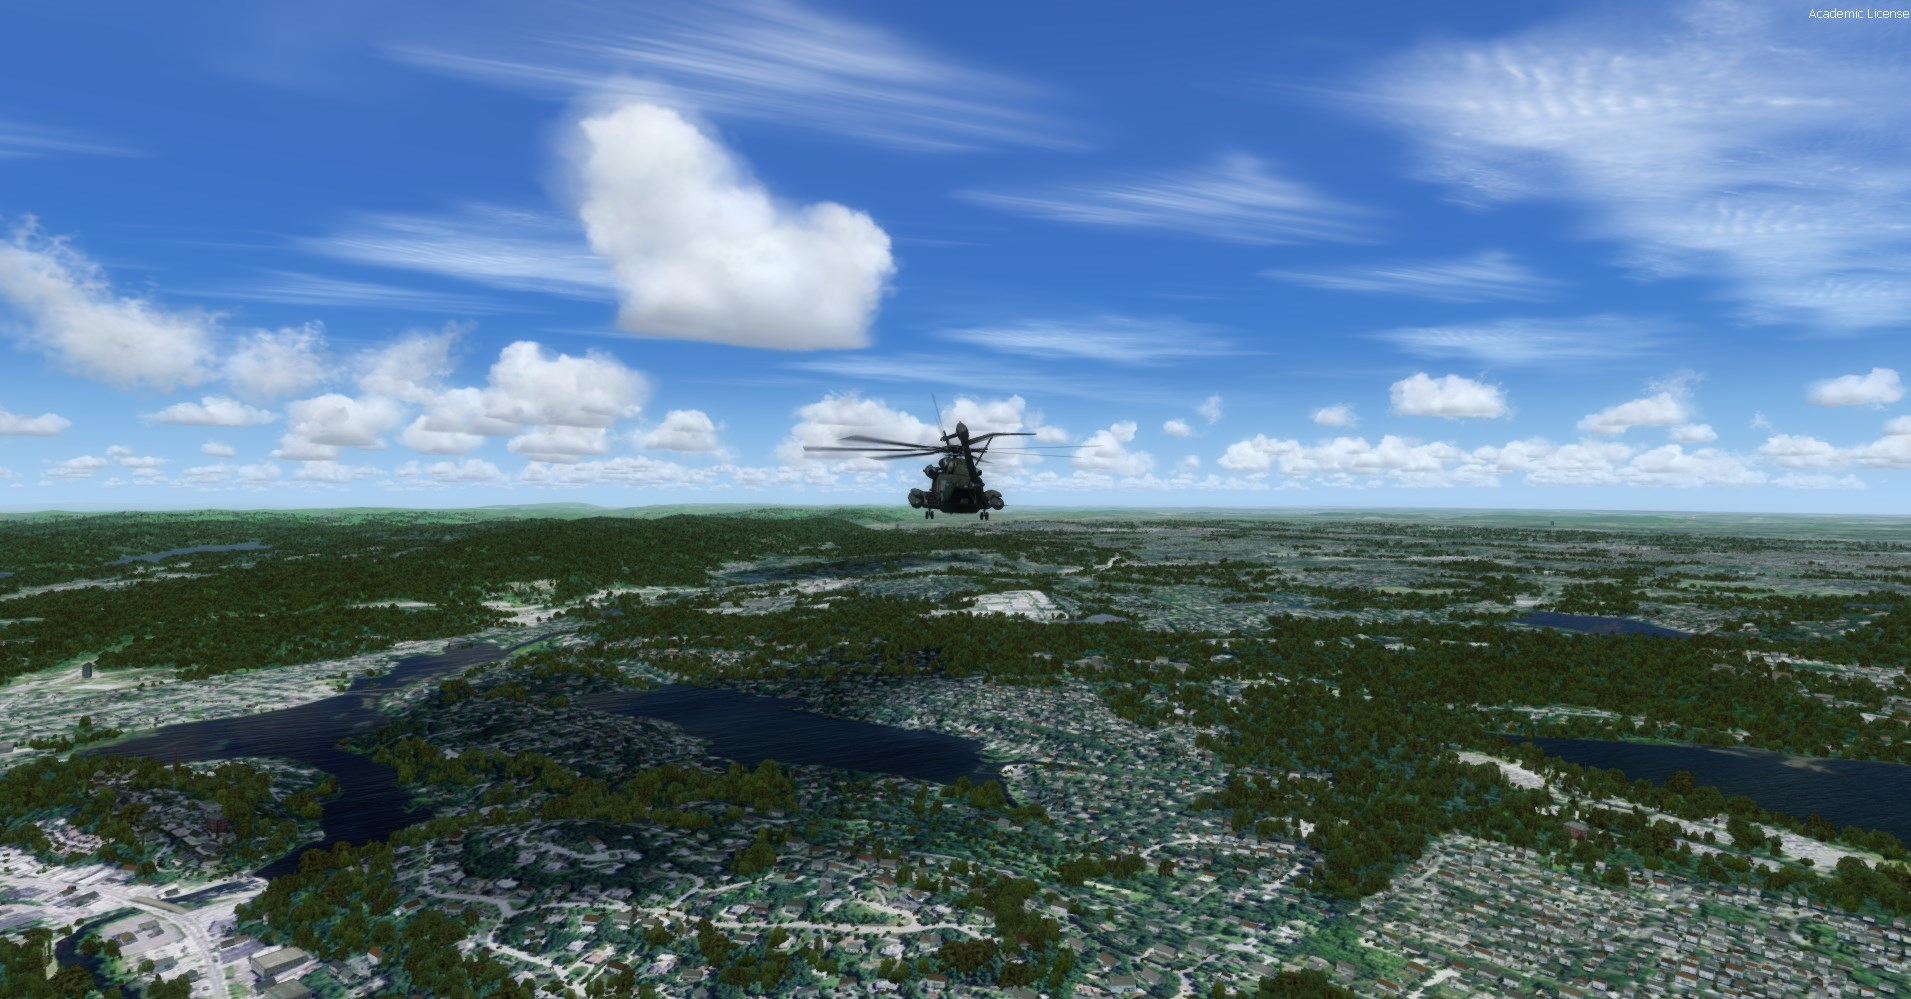 REALWORLDSCENERY - NEW YORK-NEW JERSEY 3D ENVIRONMENT 2.0 P3DV4-1, FSX OR FSXSE